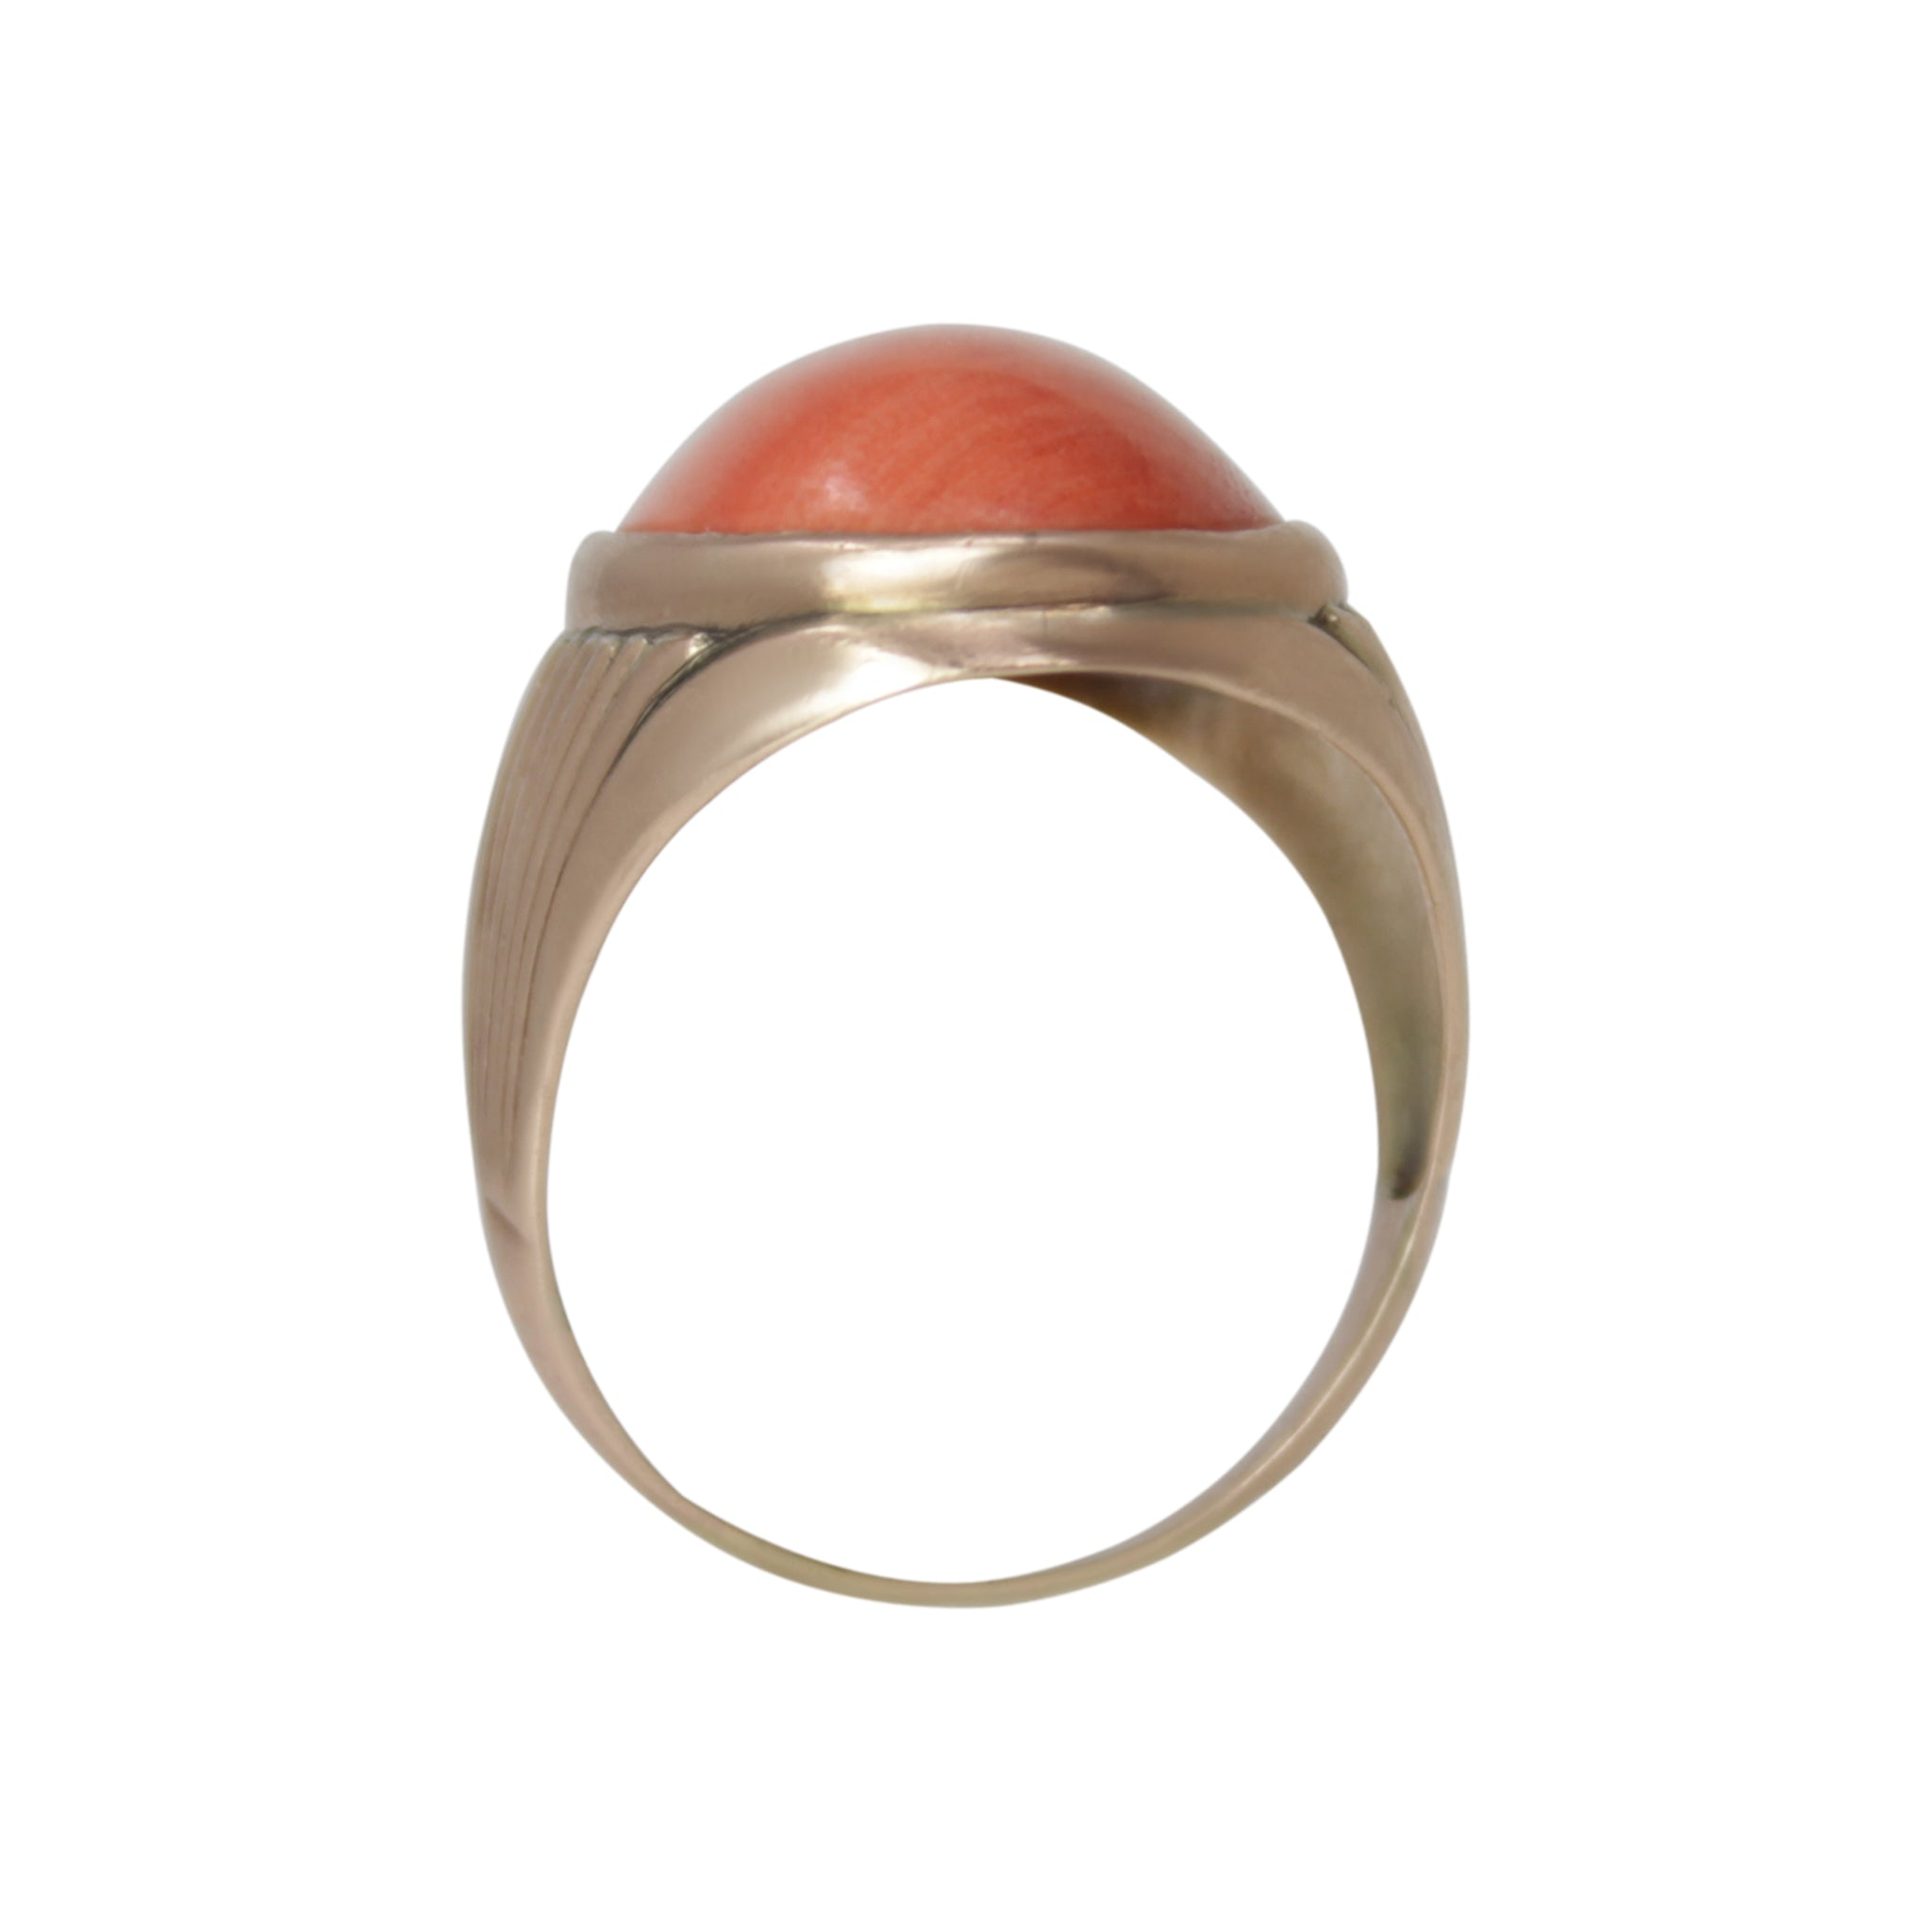 Coral Vitality Ring - 14k Yellow Gold Orange Coral Men's Unisex Ring